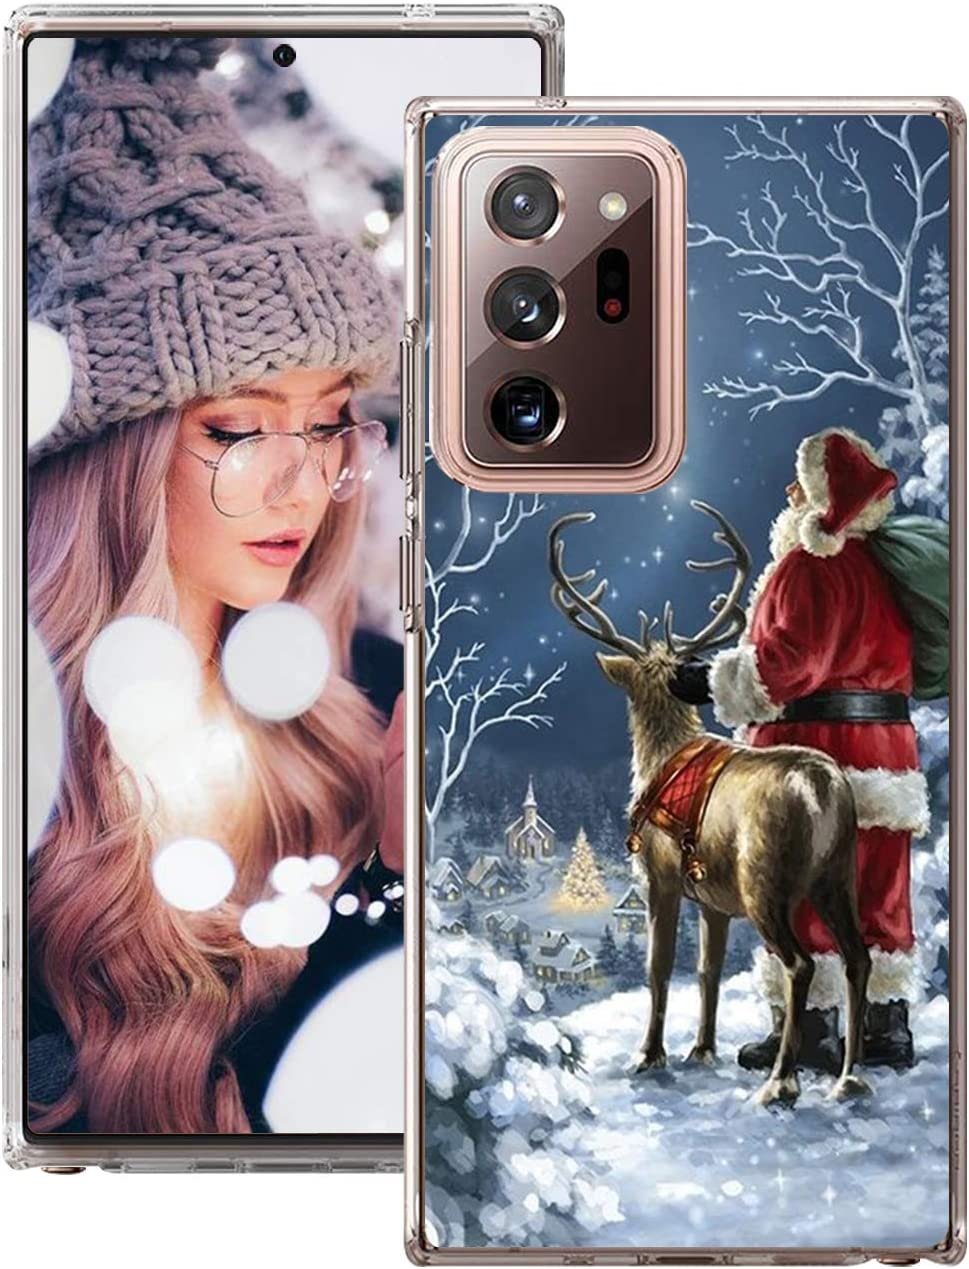 Qissy for Samsung Galaxy Note 20 Ultra 5G Case Cover Slim Clear Silicone Gel Christmas Tree Snowflake Santa Claus Gift Cases Shockproof Protective Cover for Samsung Note 20 Ultra 5G Cell Phone Case